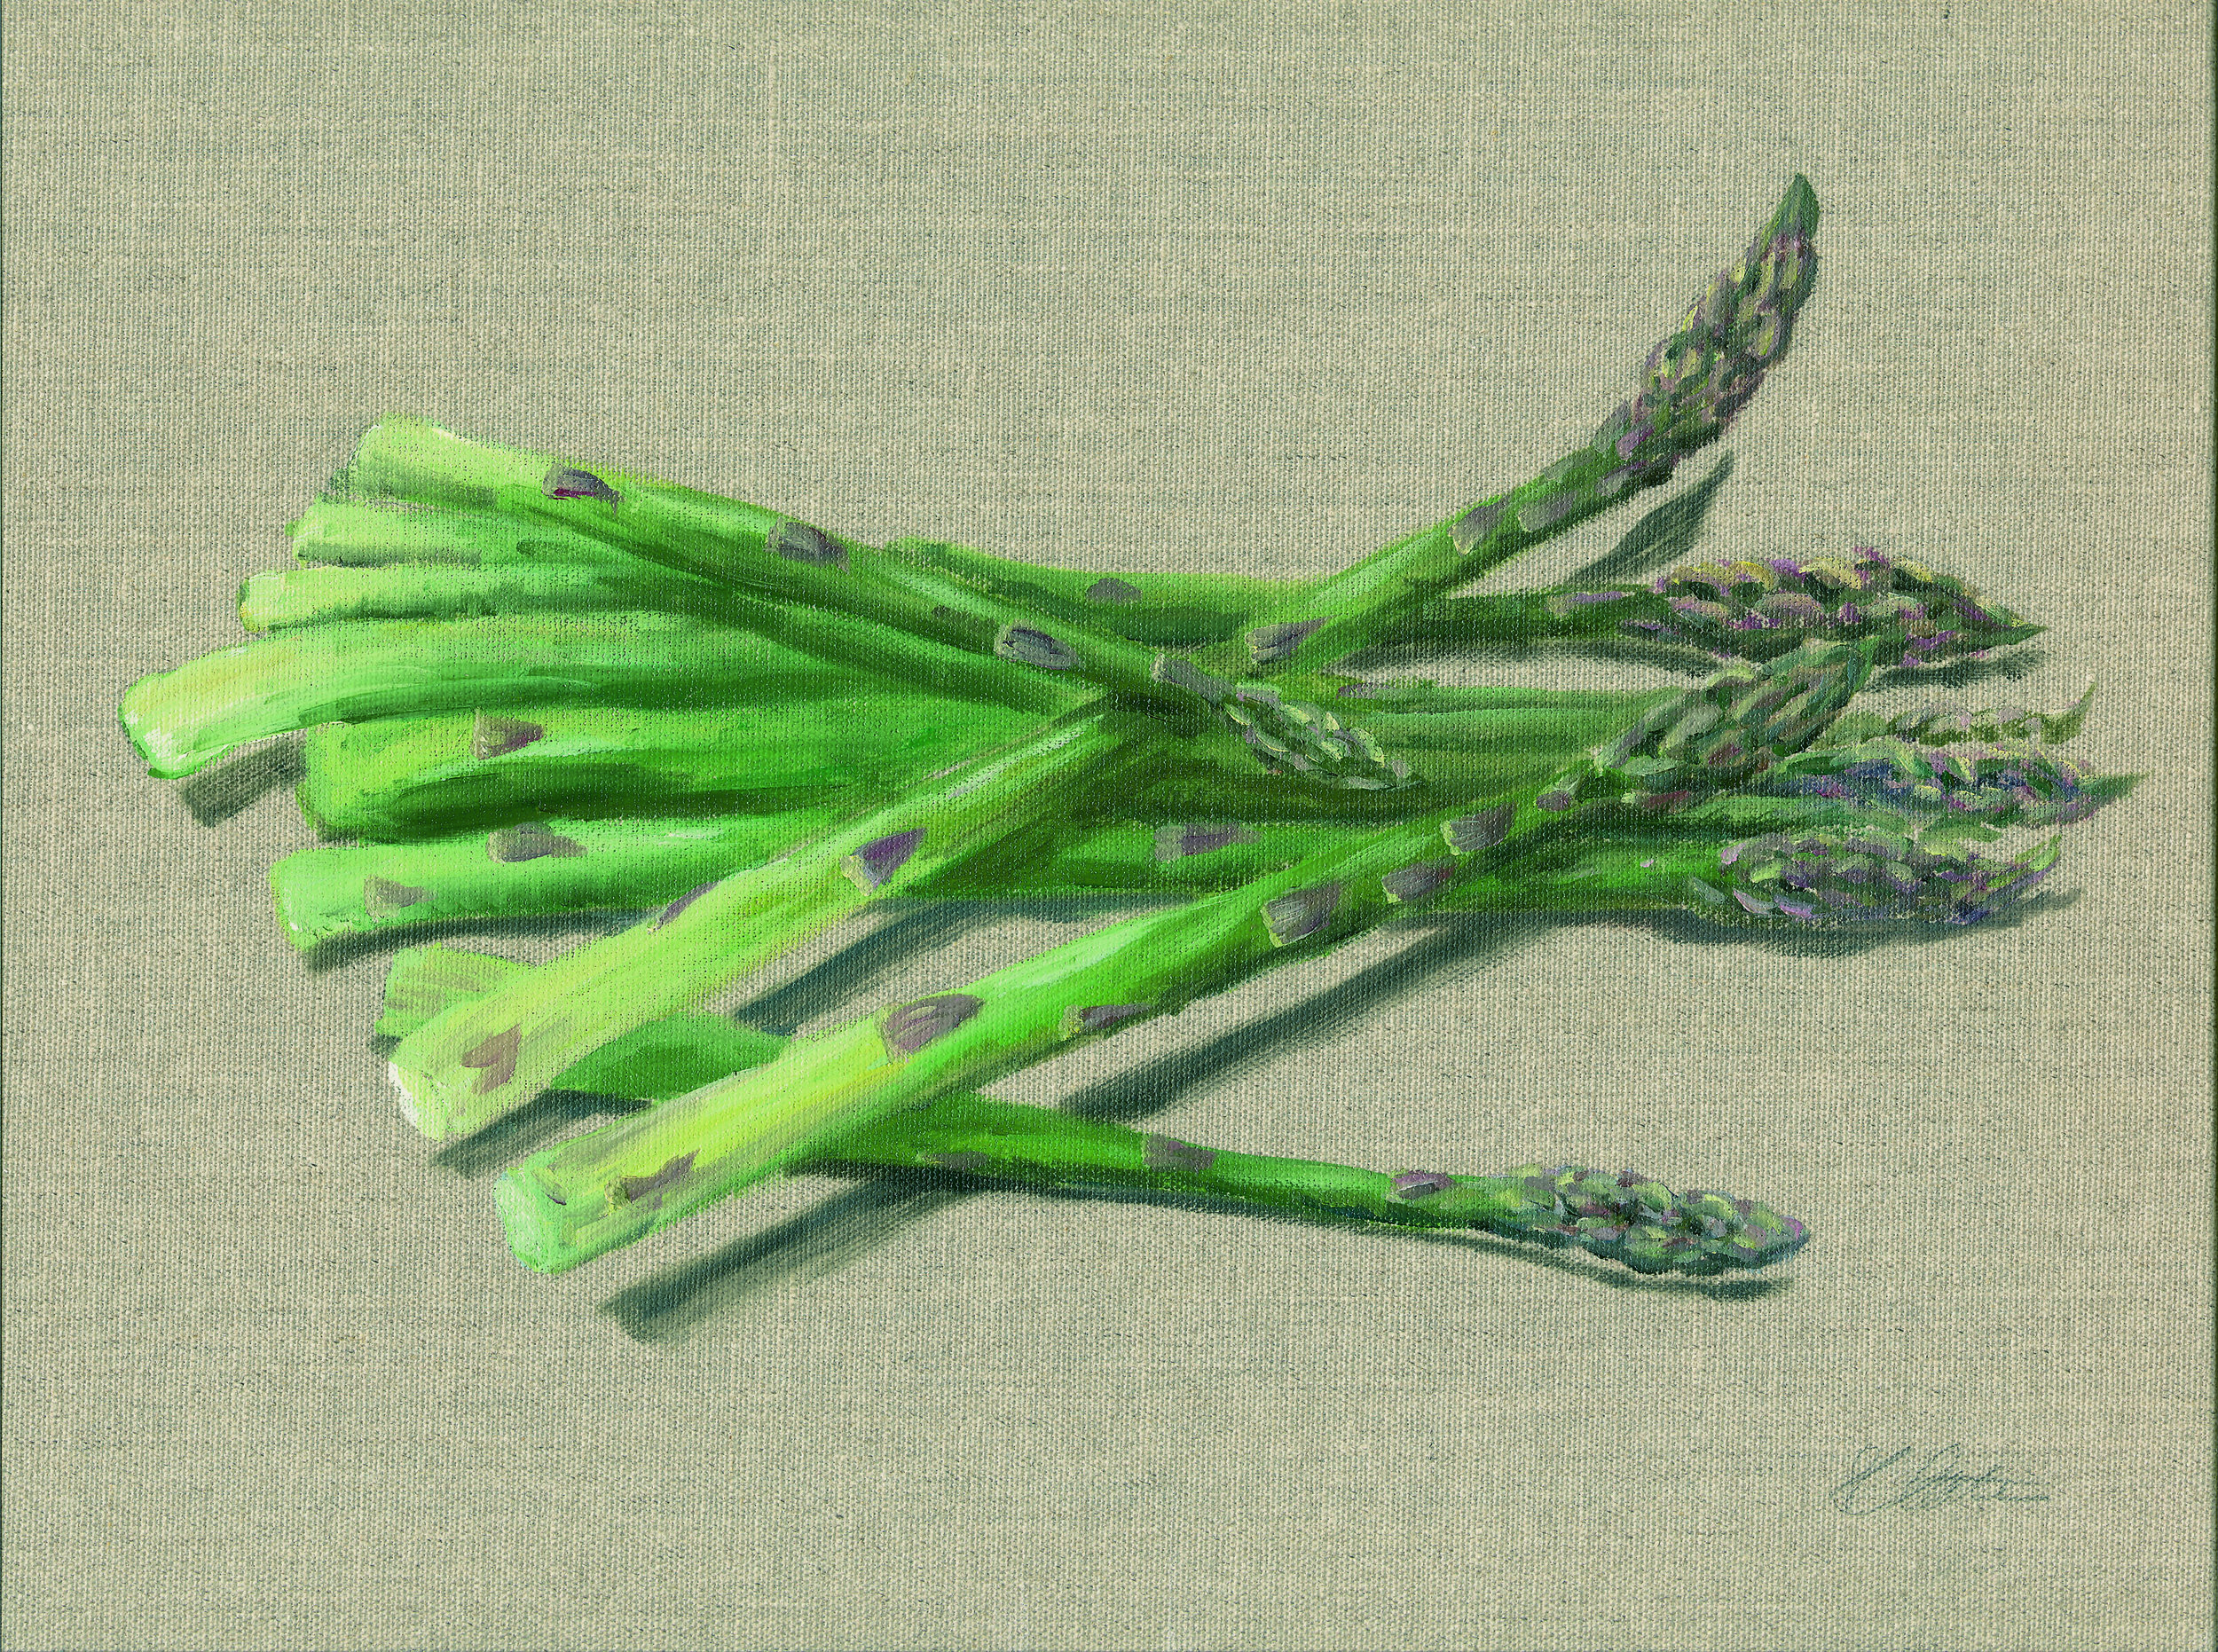 Asparagus. Oil on hessian canvas. Original Sold Prints available